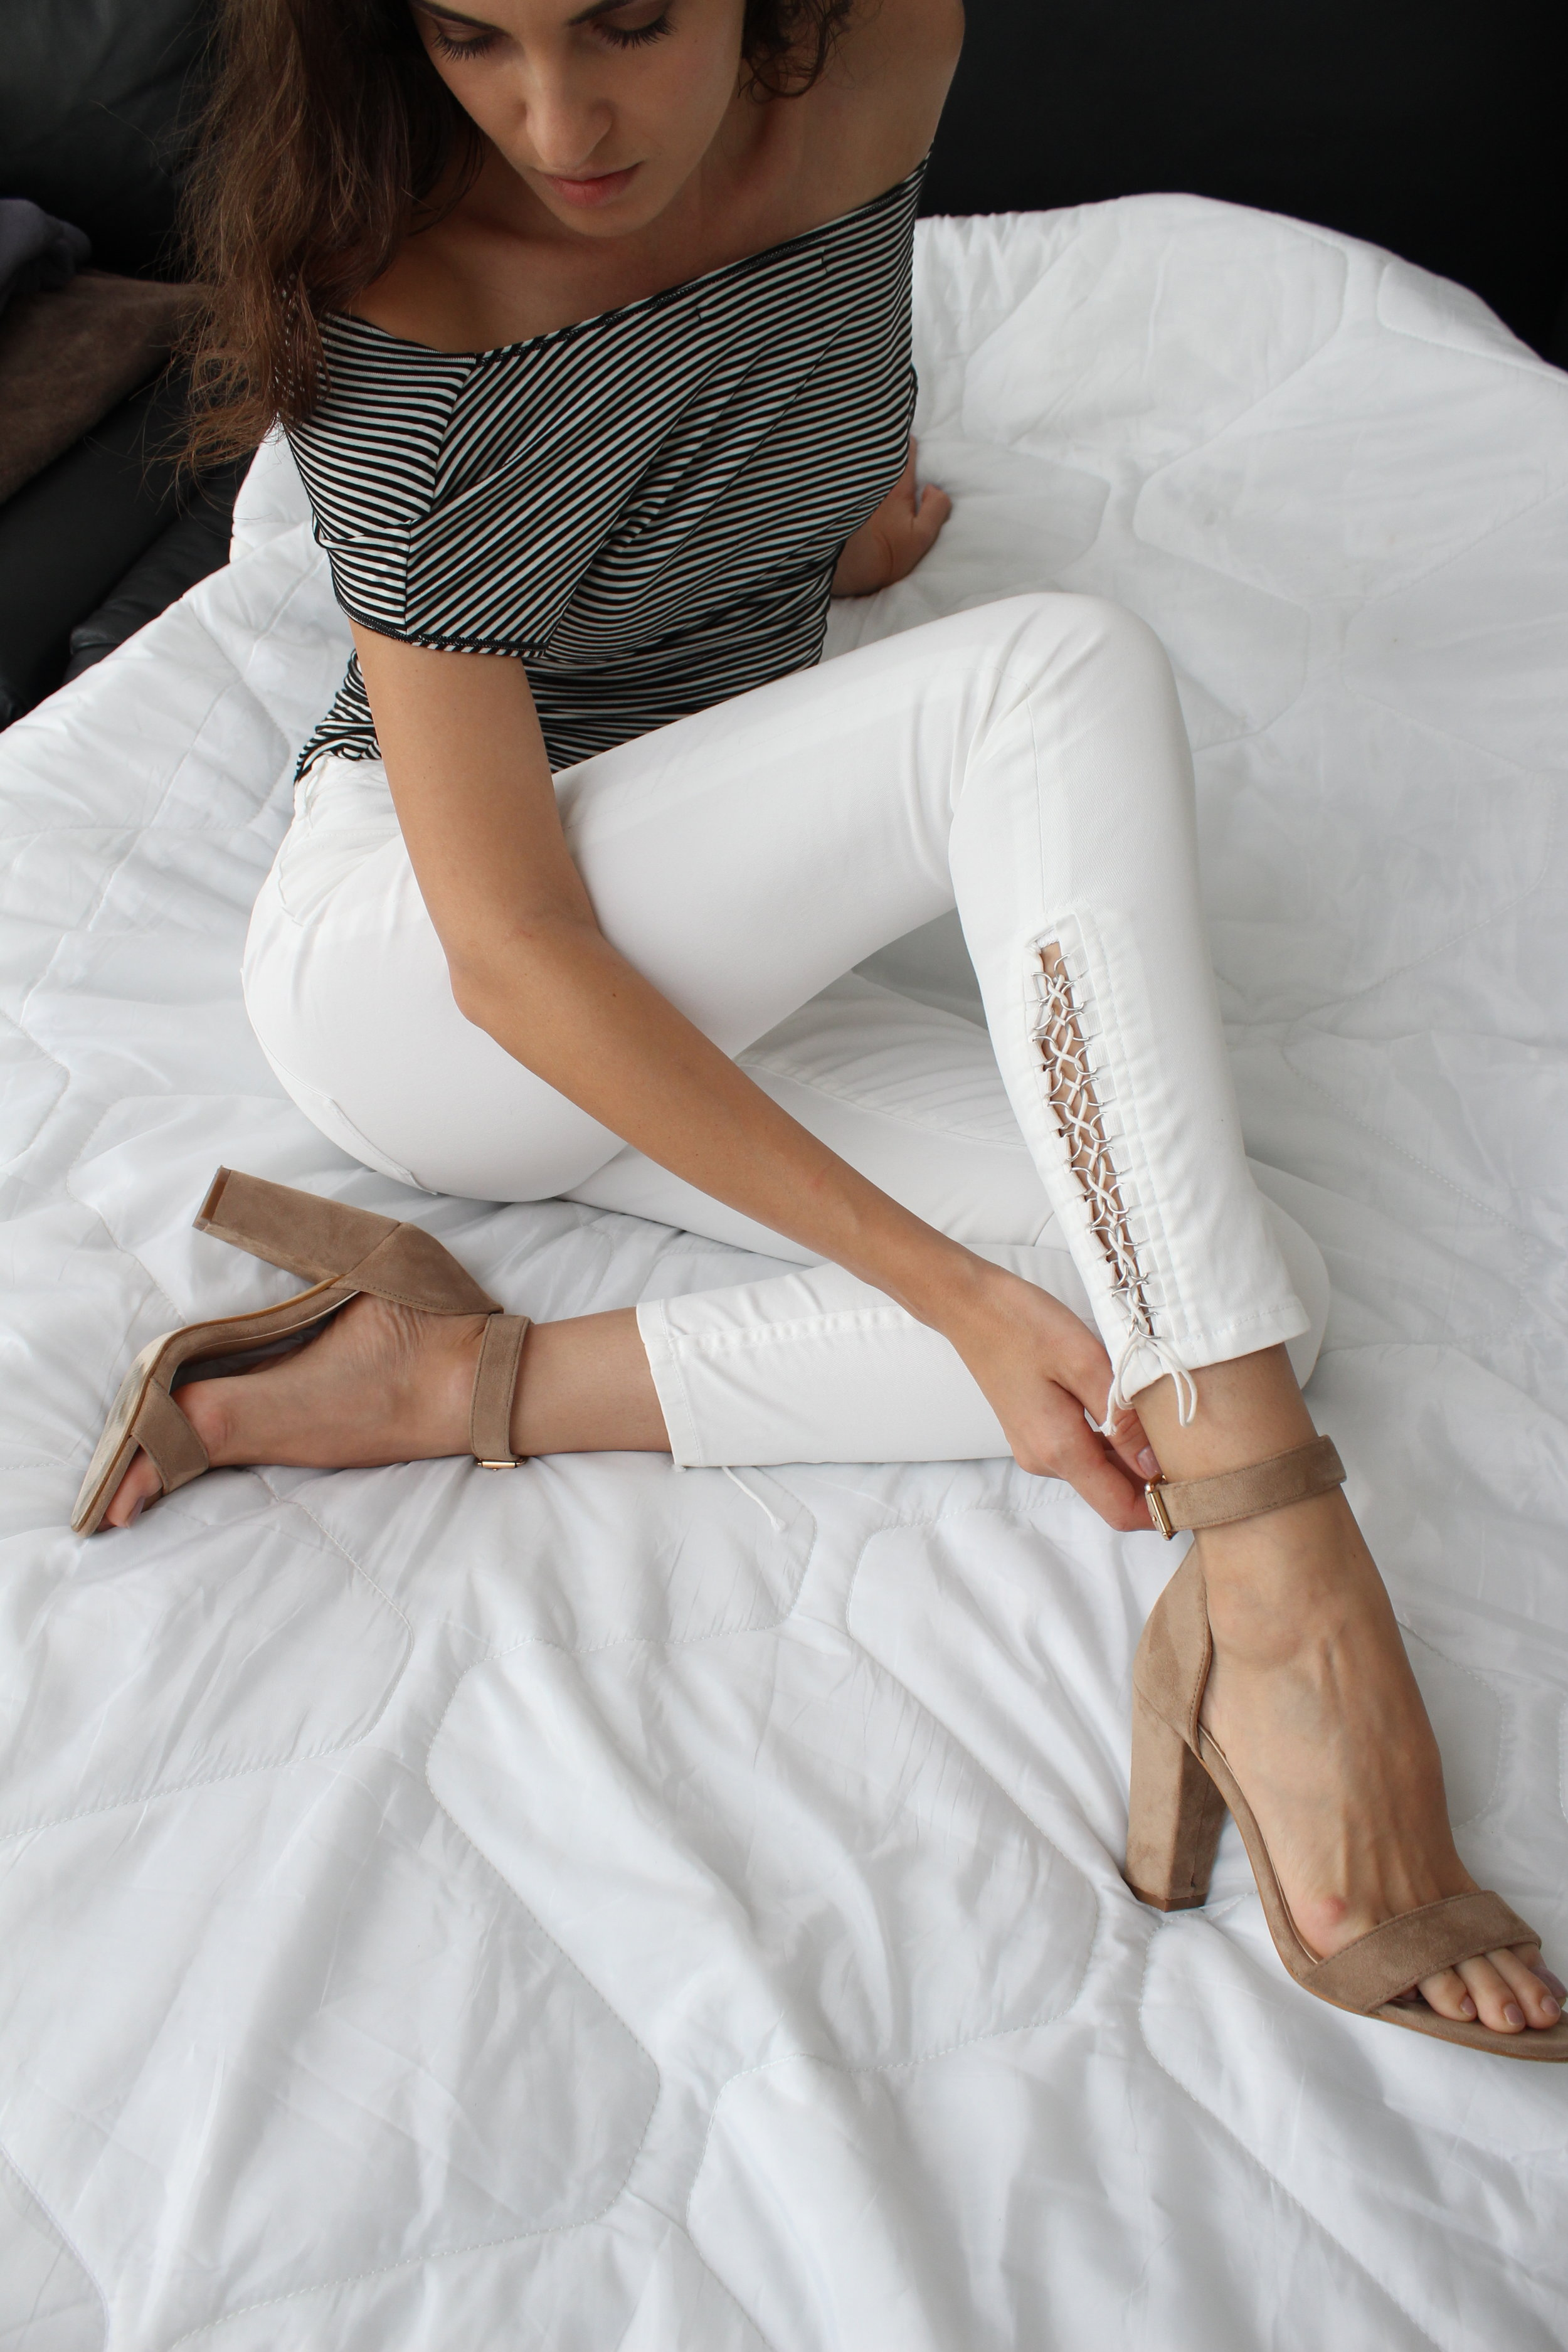 Red slim fit trousers on white sheet fashion photography